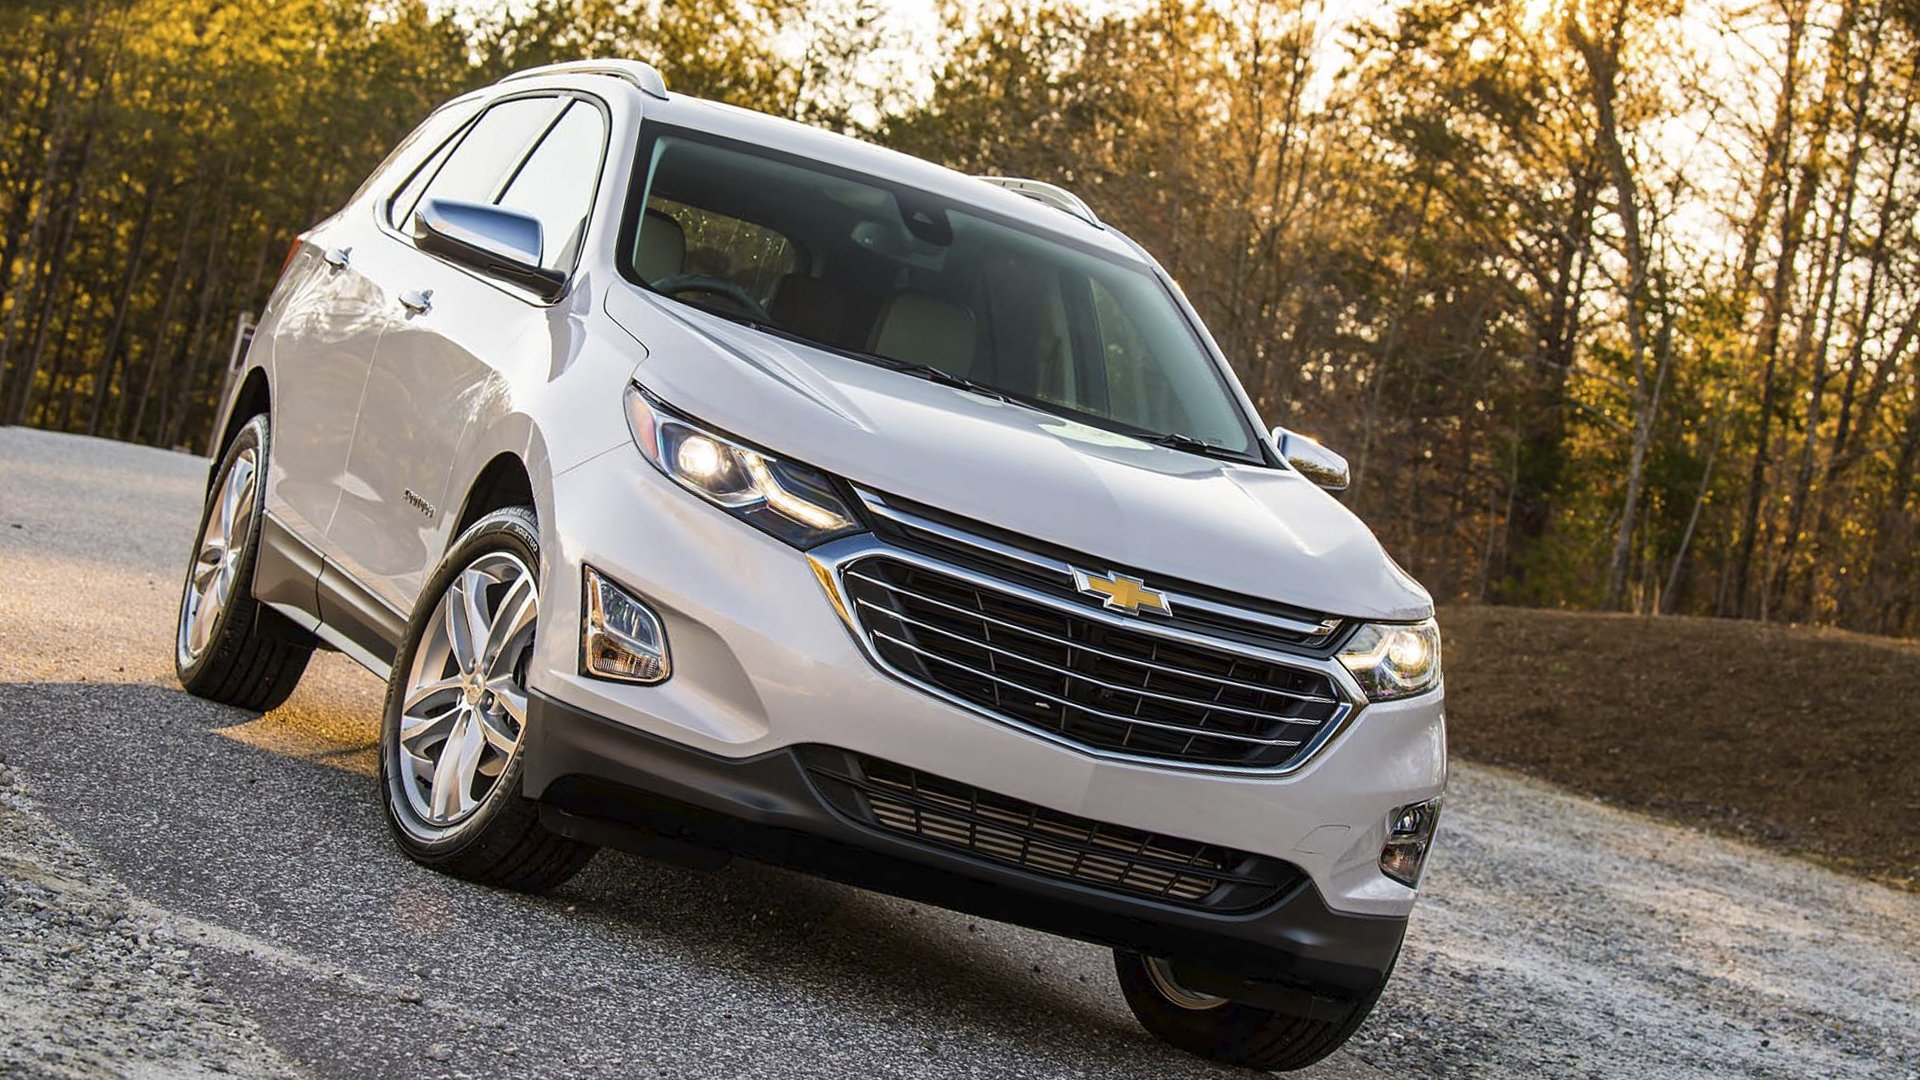 New 2019 Chevrolet Equinox Review